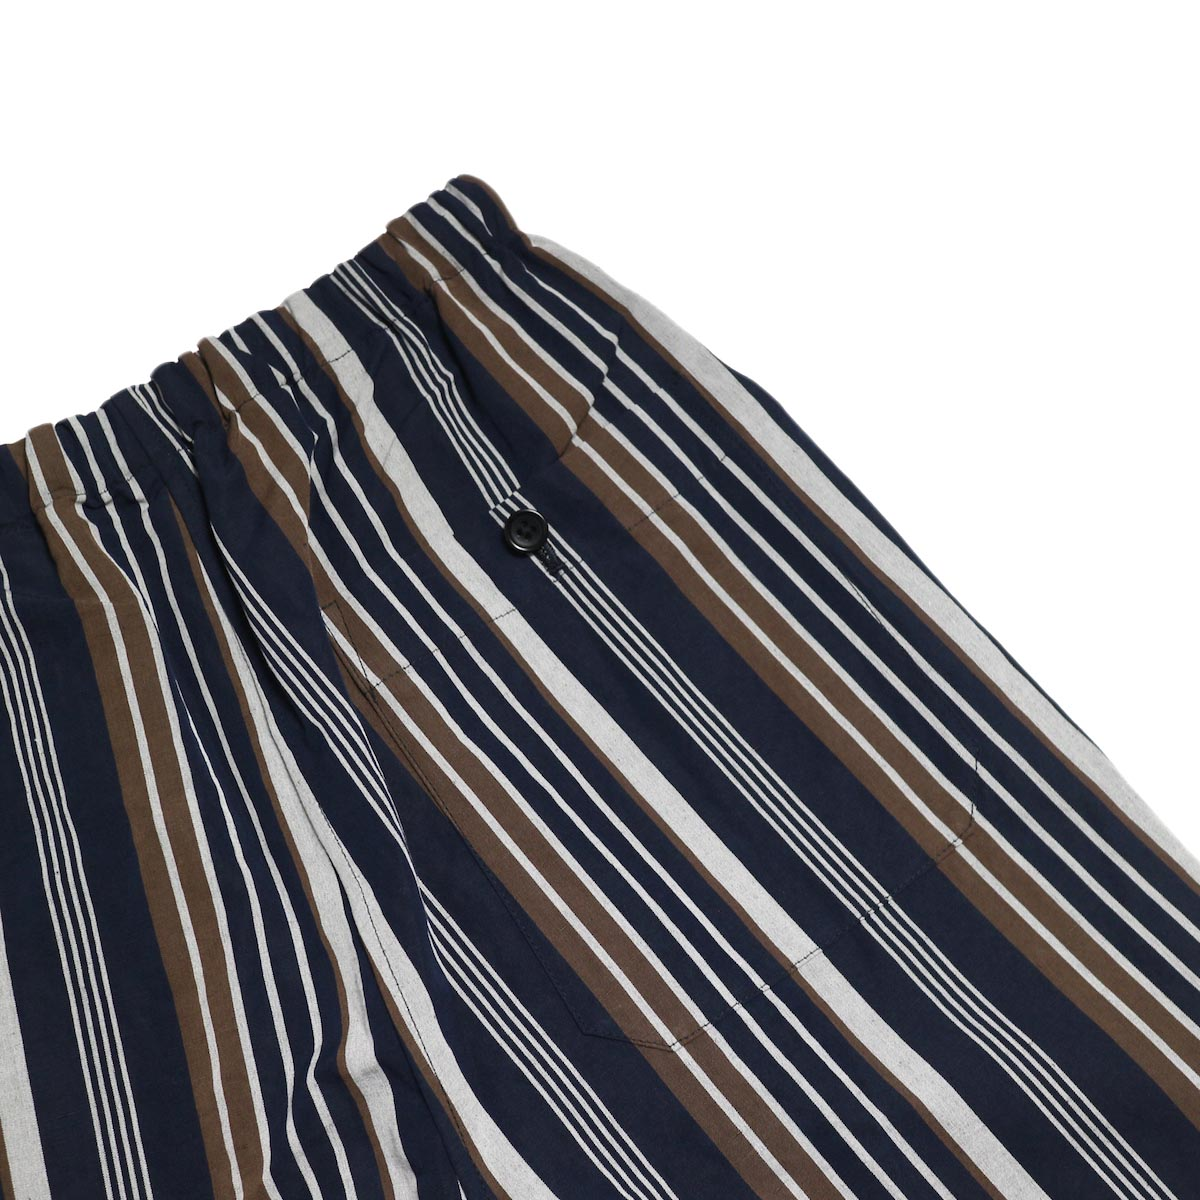 A VONTADE / Lax Easy Pants -Navy Stripe バックポケット